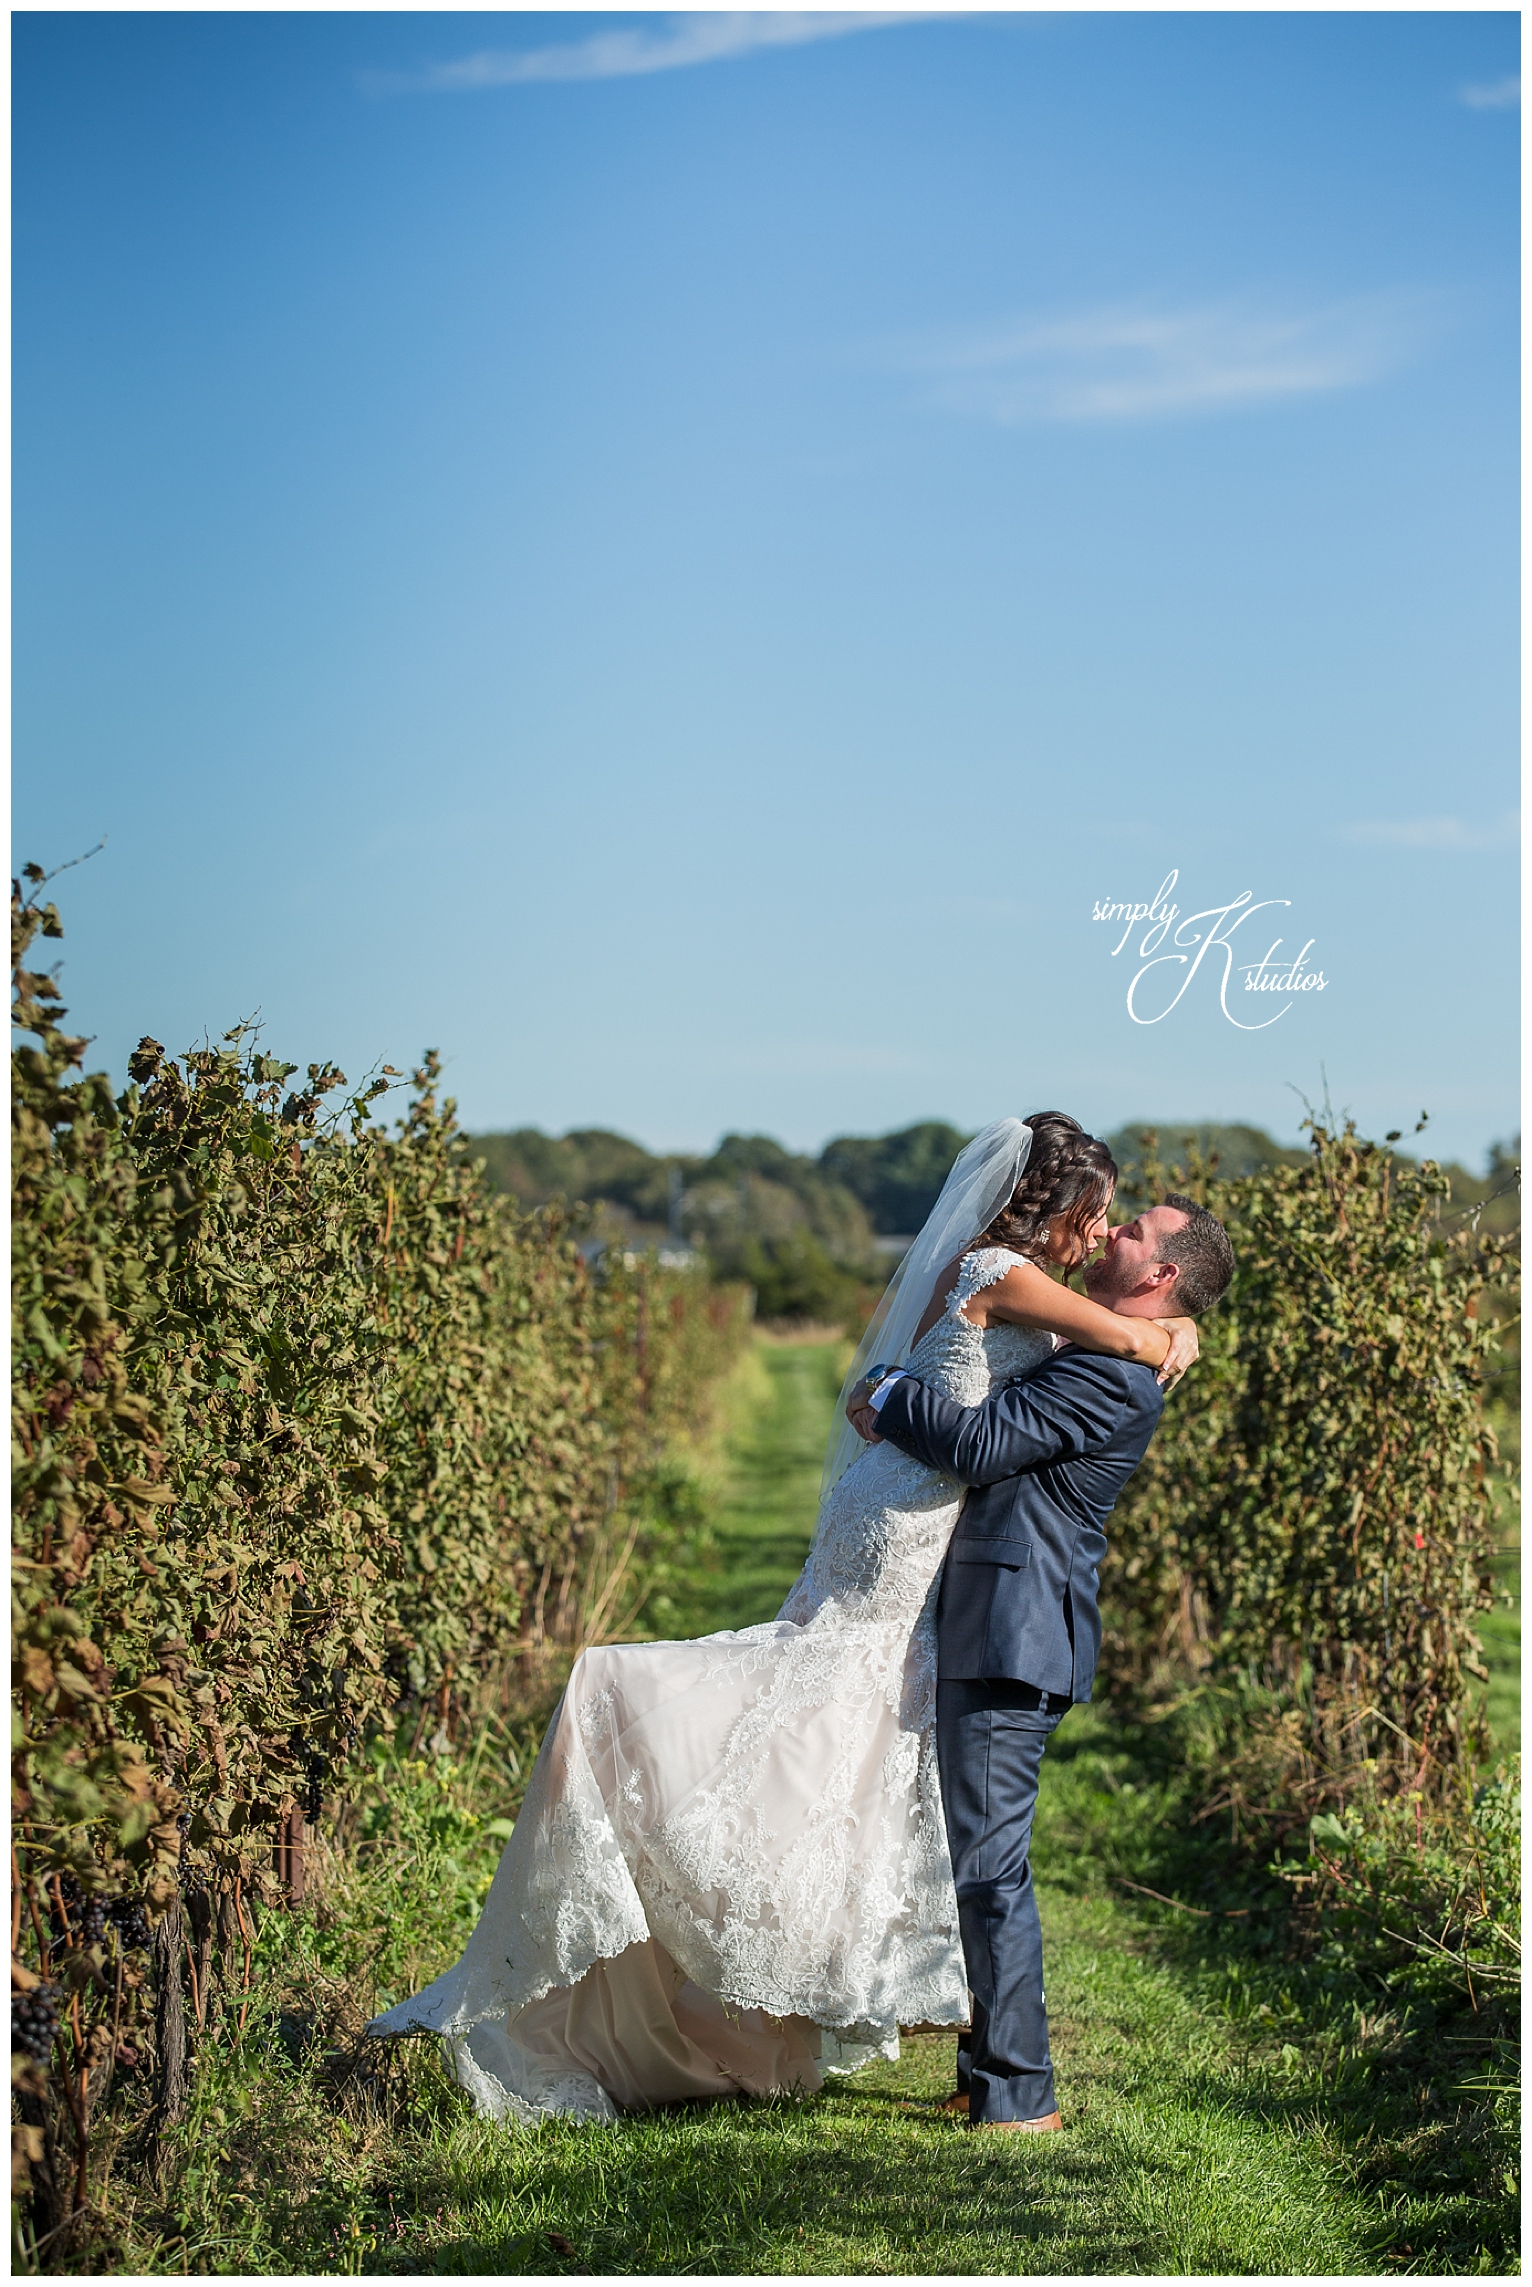 66 Wedding Photographers at Saltwater Farm Vineyard.jpg